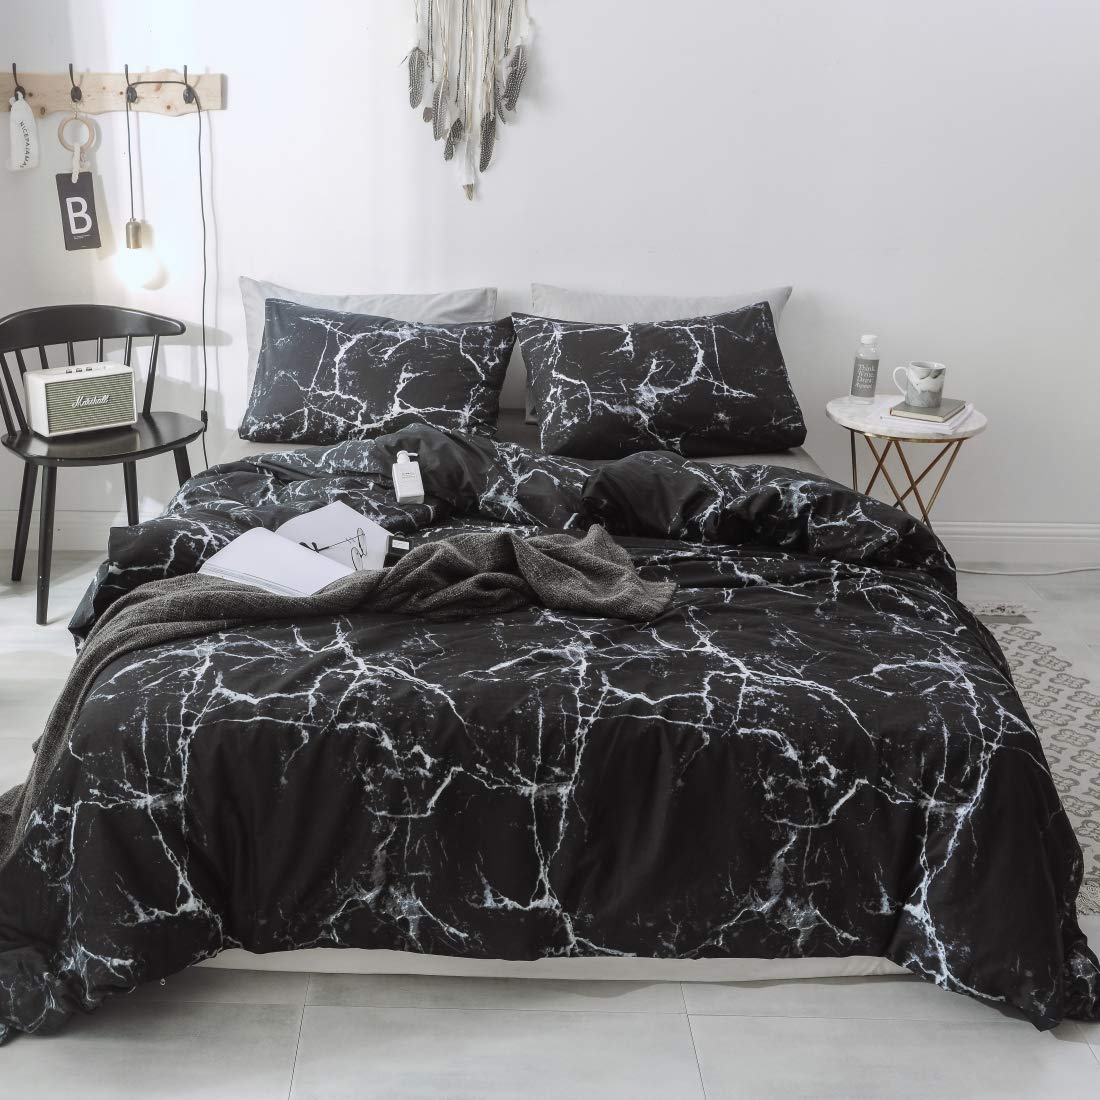 P&Q Duvet Cover Set Premium Soft Cotton Reversible Black Marble Bedding Set for Teen Boys Girls, Quilt Comforter Cover with Hidden Zipper Closure Four Corner Tie Queen Size